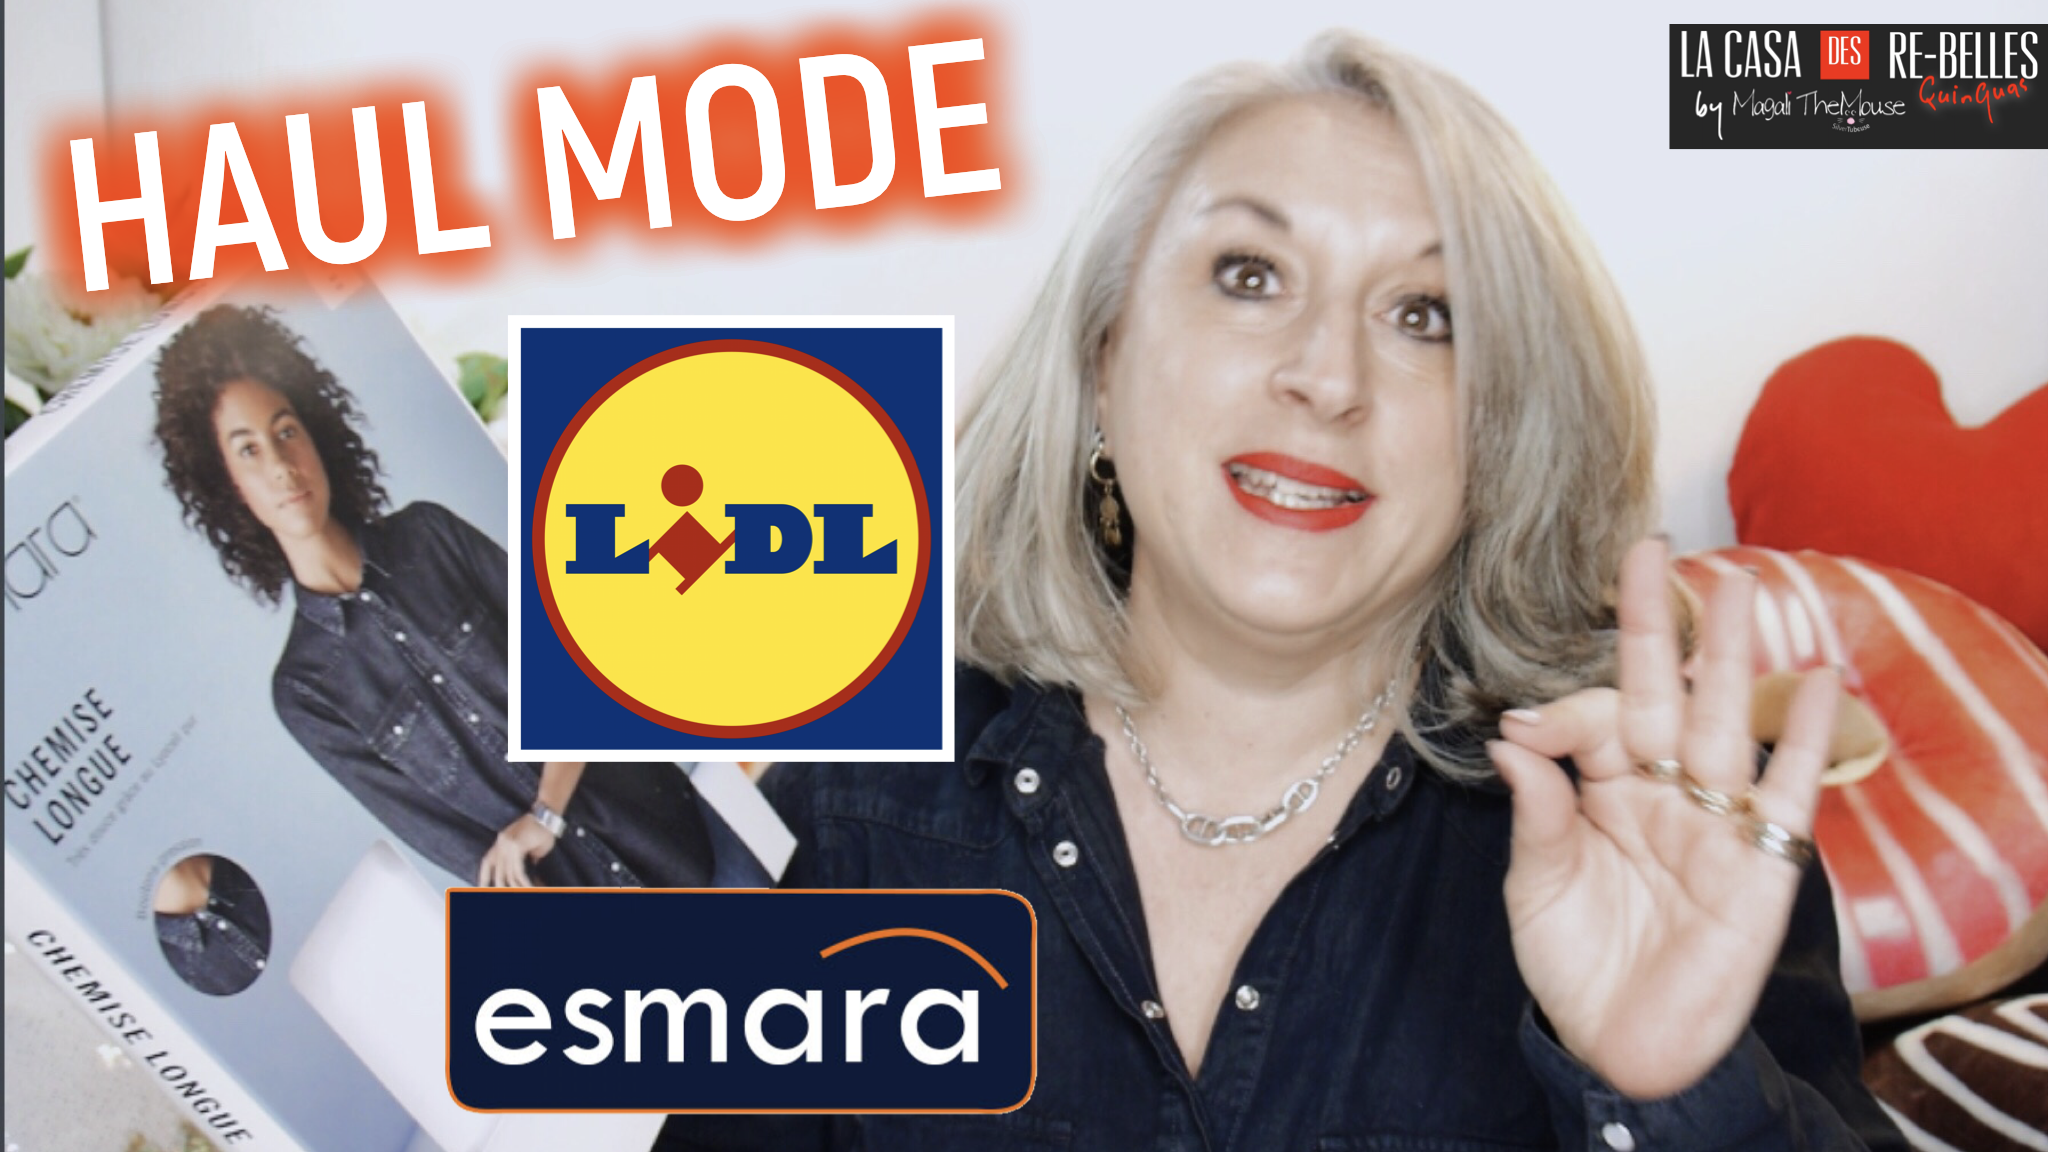 Haul mode LIDL ESMARA